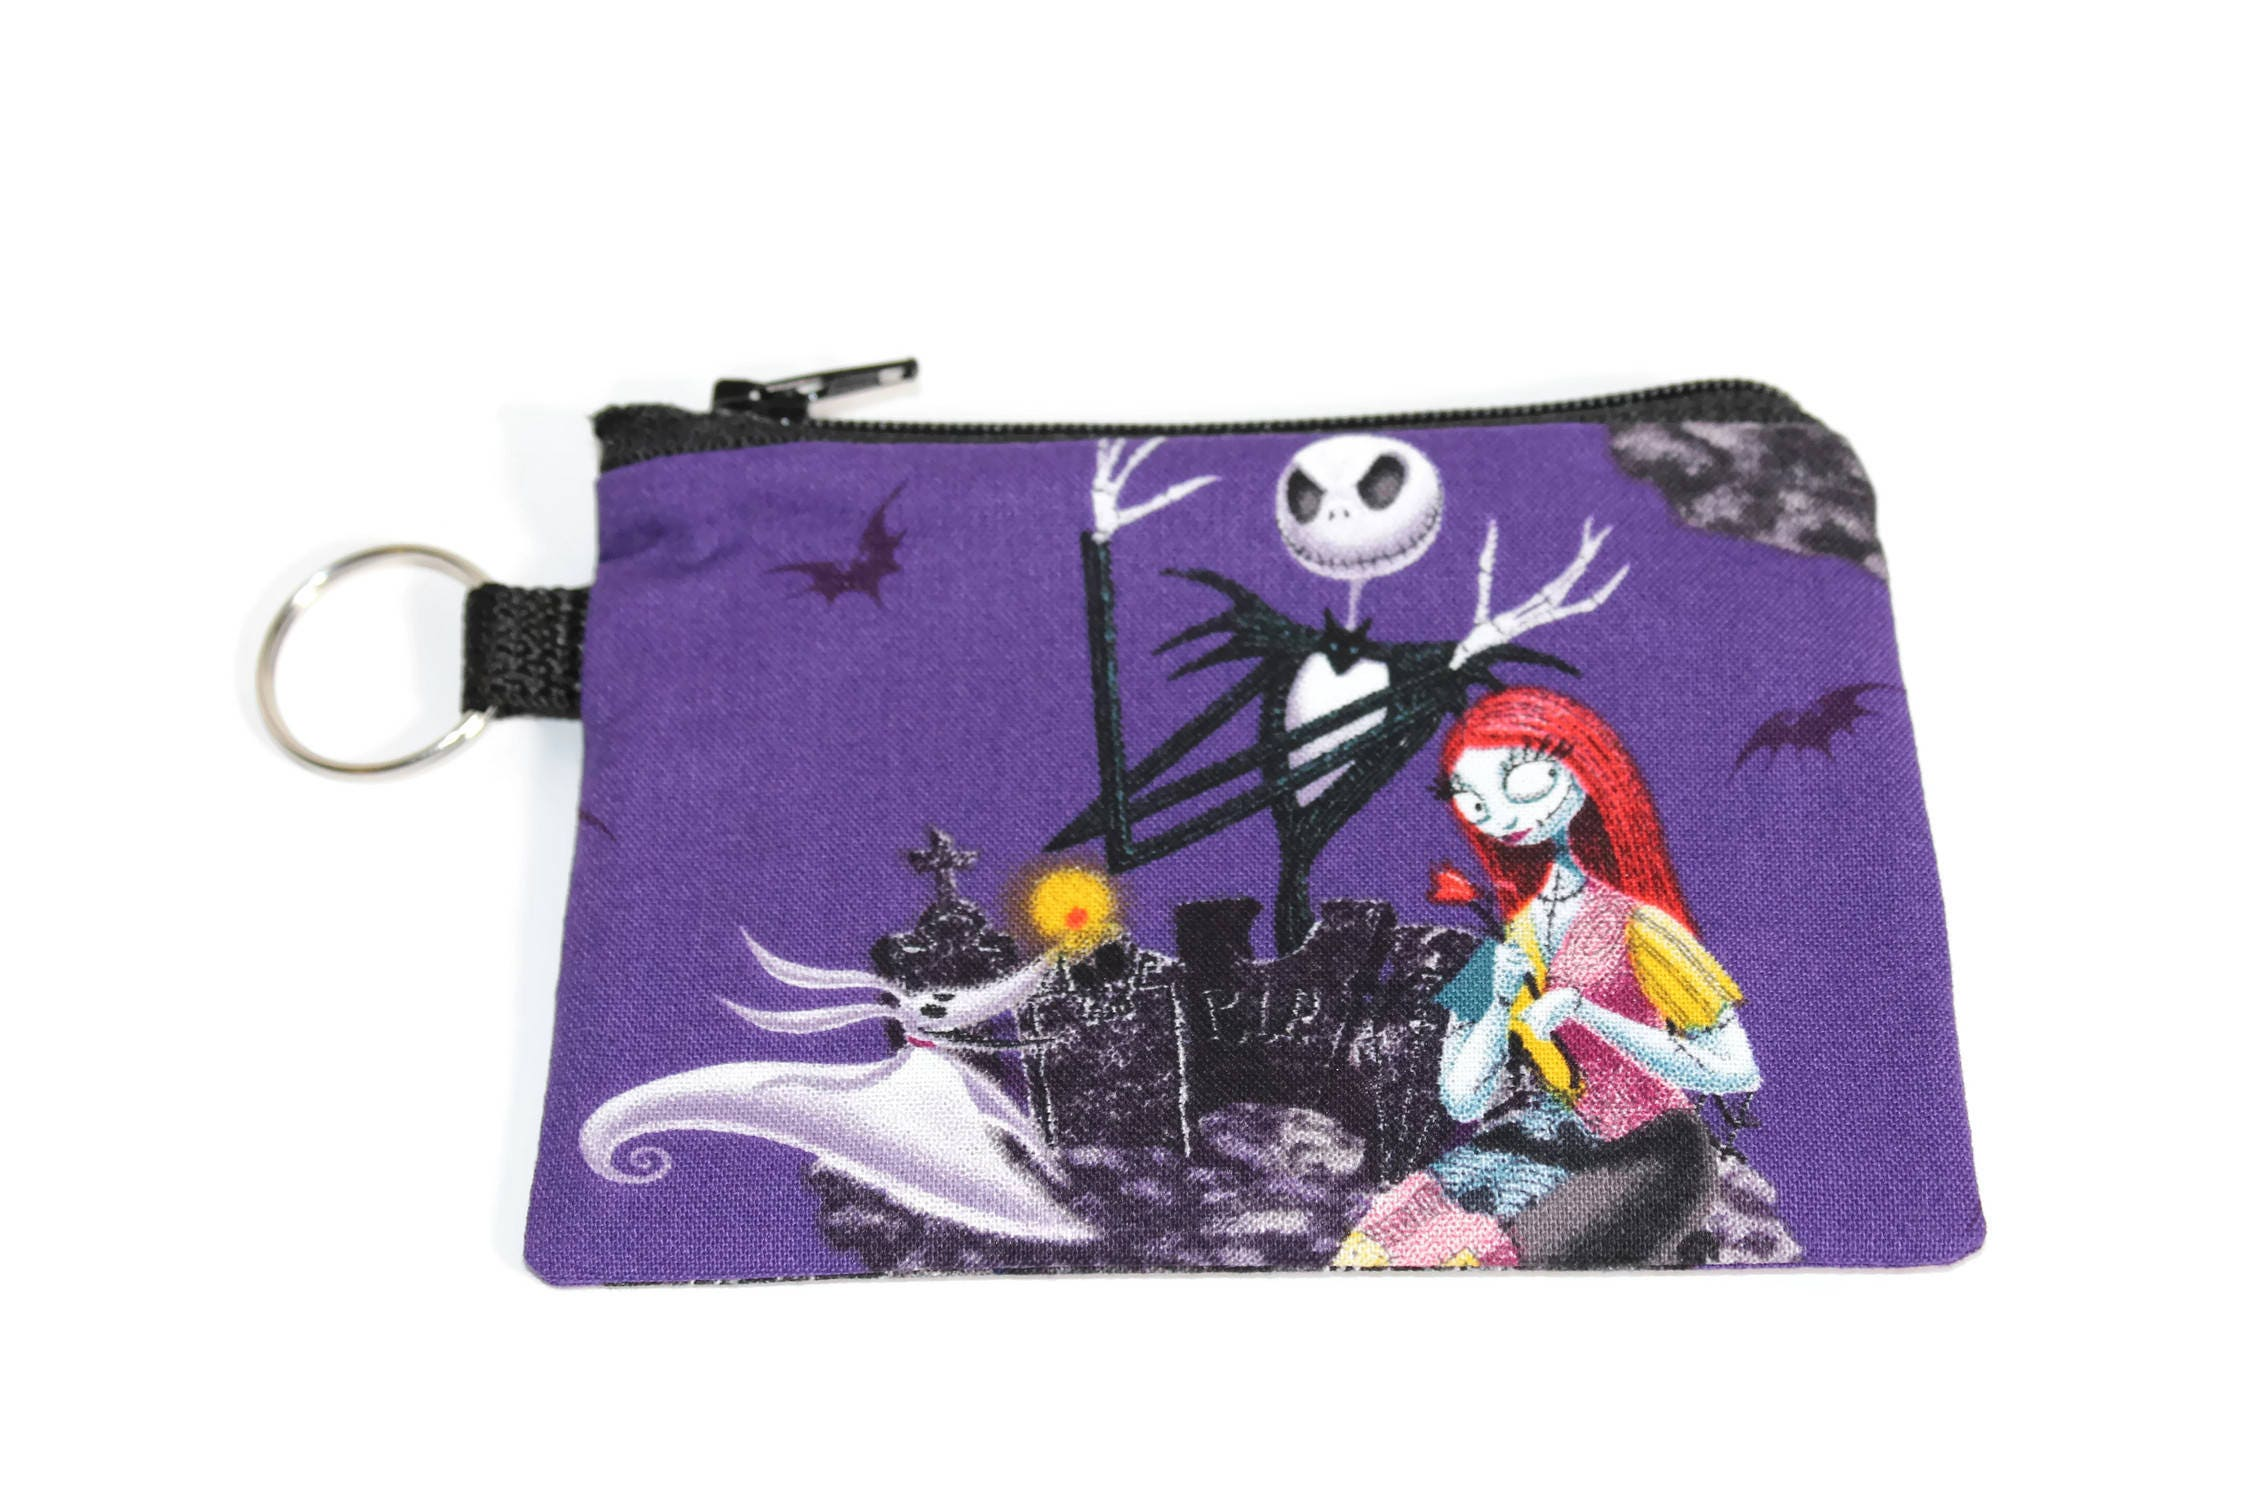 Credit Card Holder, Nightmare Before Christmas KeyChain, Card Holder ...